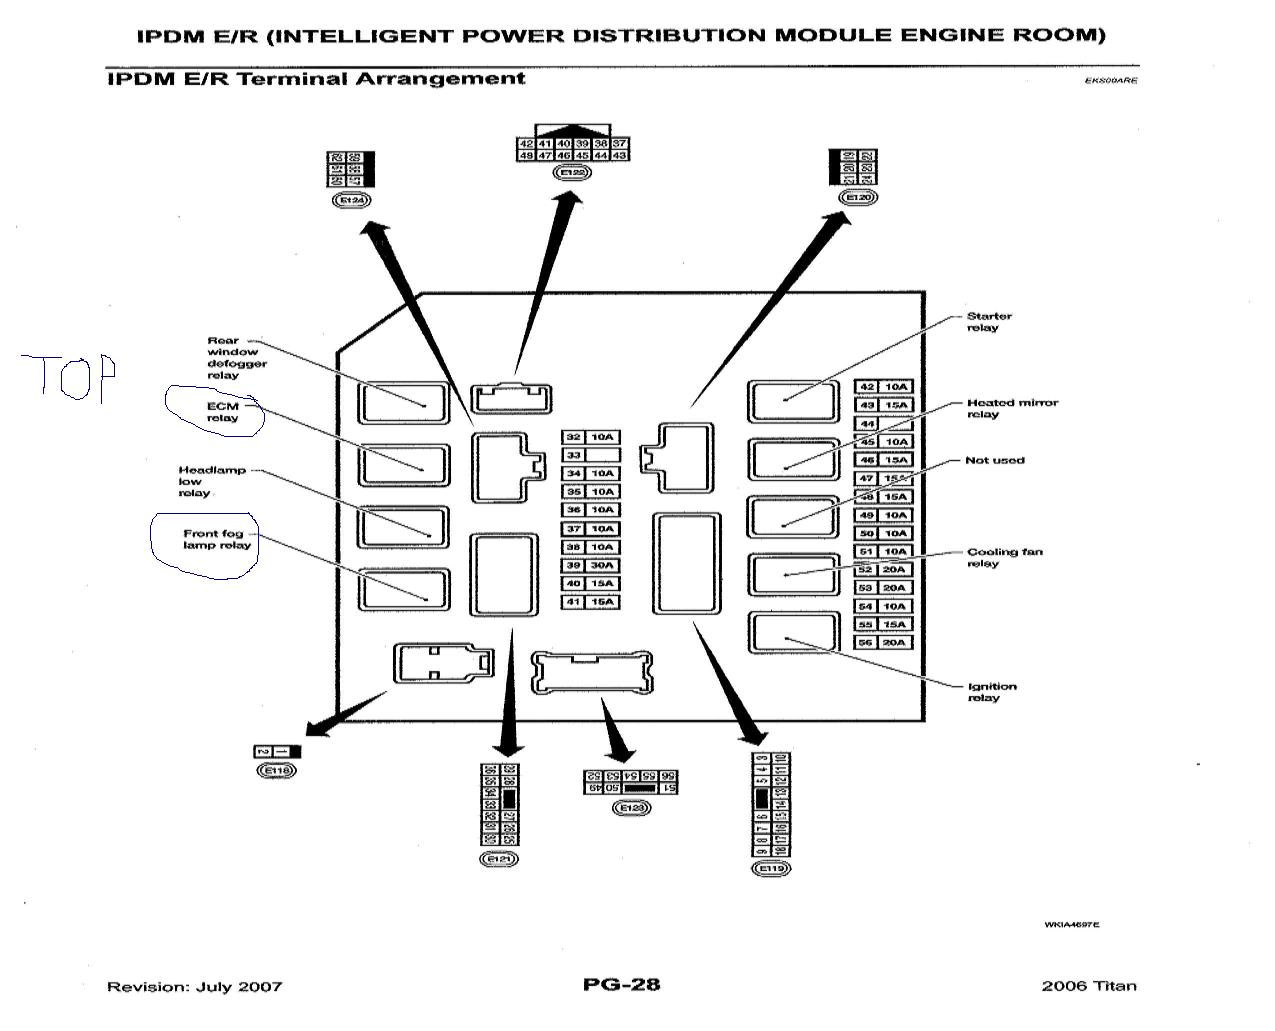 Ahno Problem At All Here Is The Location Of The Ipdm Plus A